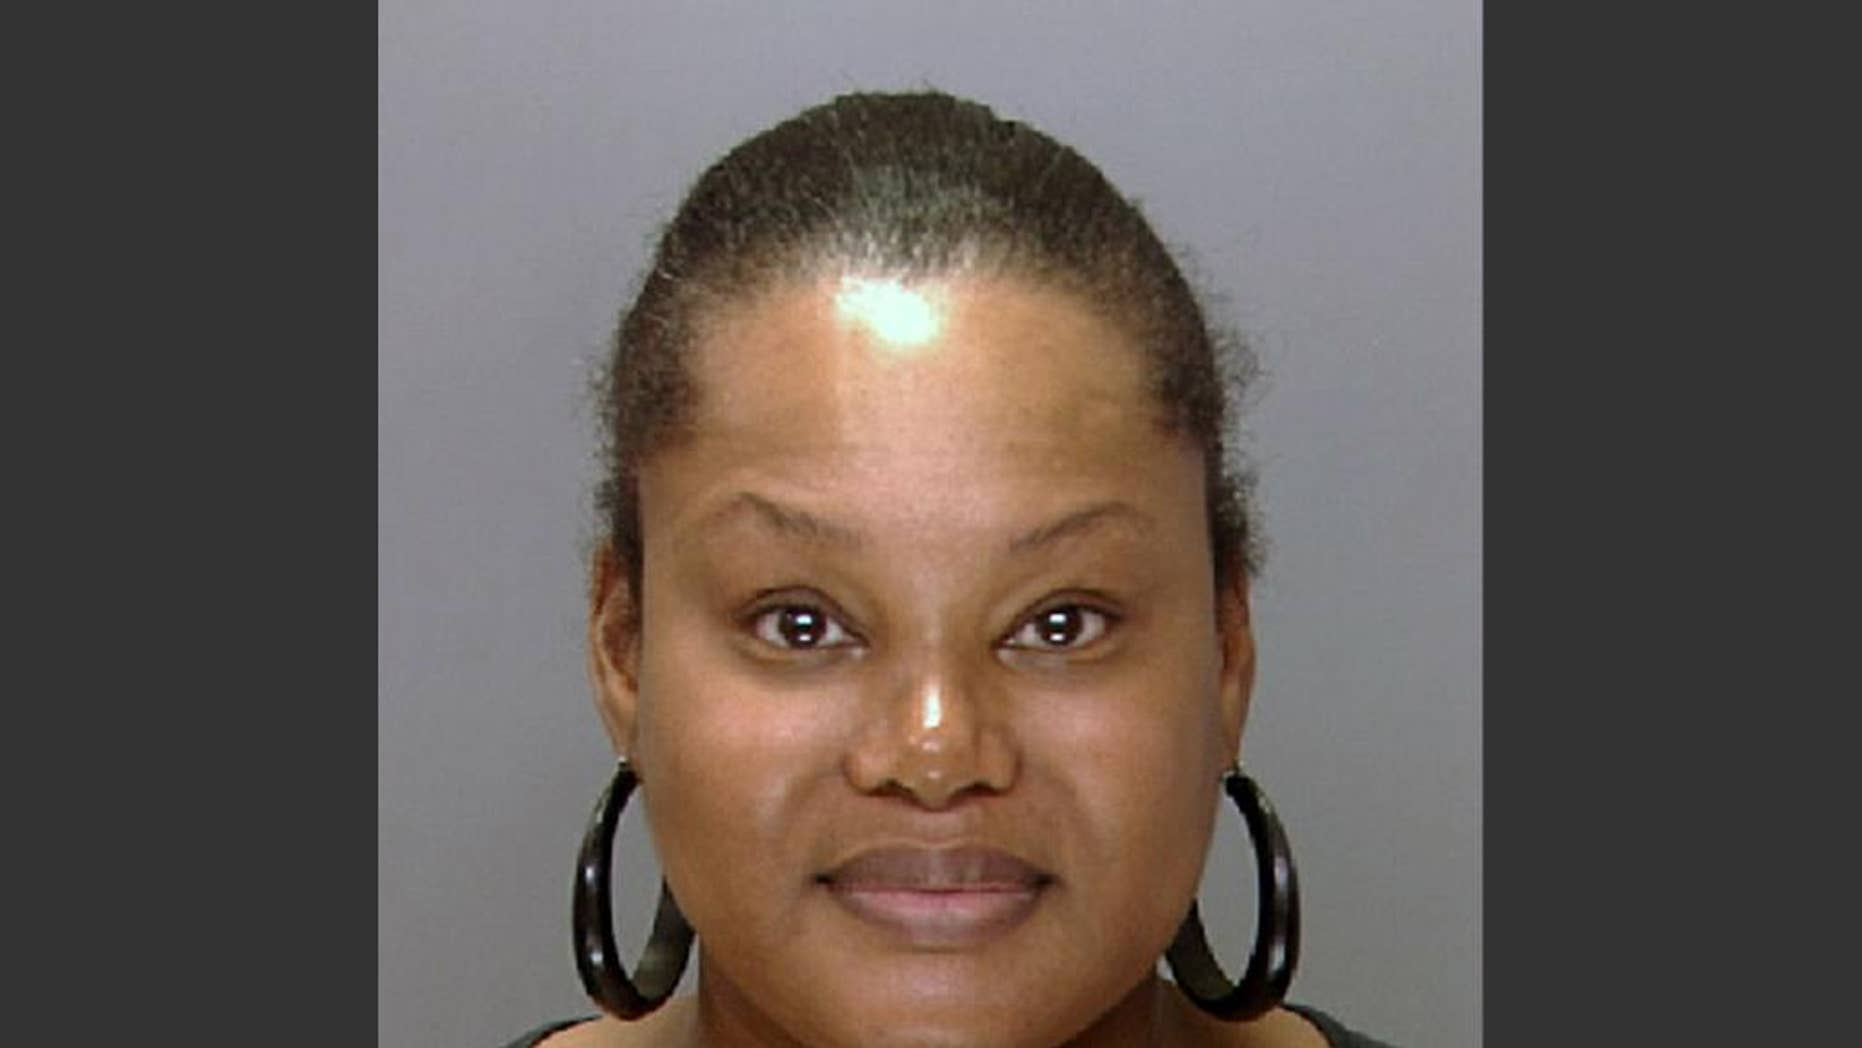 """FILE - This undated file photo provided by the Philadelphia Police Department shows Padge Gordon, also known as Padge Victoria Windslowe. The former madam who bragged of doing black-market """"body sculpting"""" on thousands of women was convicted of murder Monday, March 9, 2015, in the death of a dancer whose heart stopped after nearly half a gallon of silicone was injected into her buttocks. (AP Photo/Philadelphia Police Department, File)"""